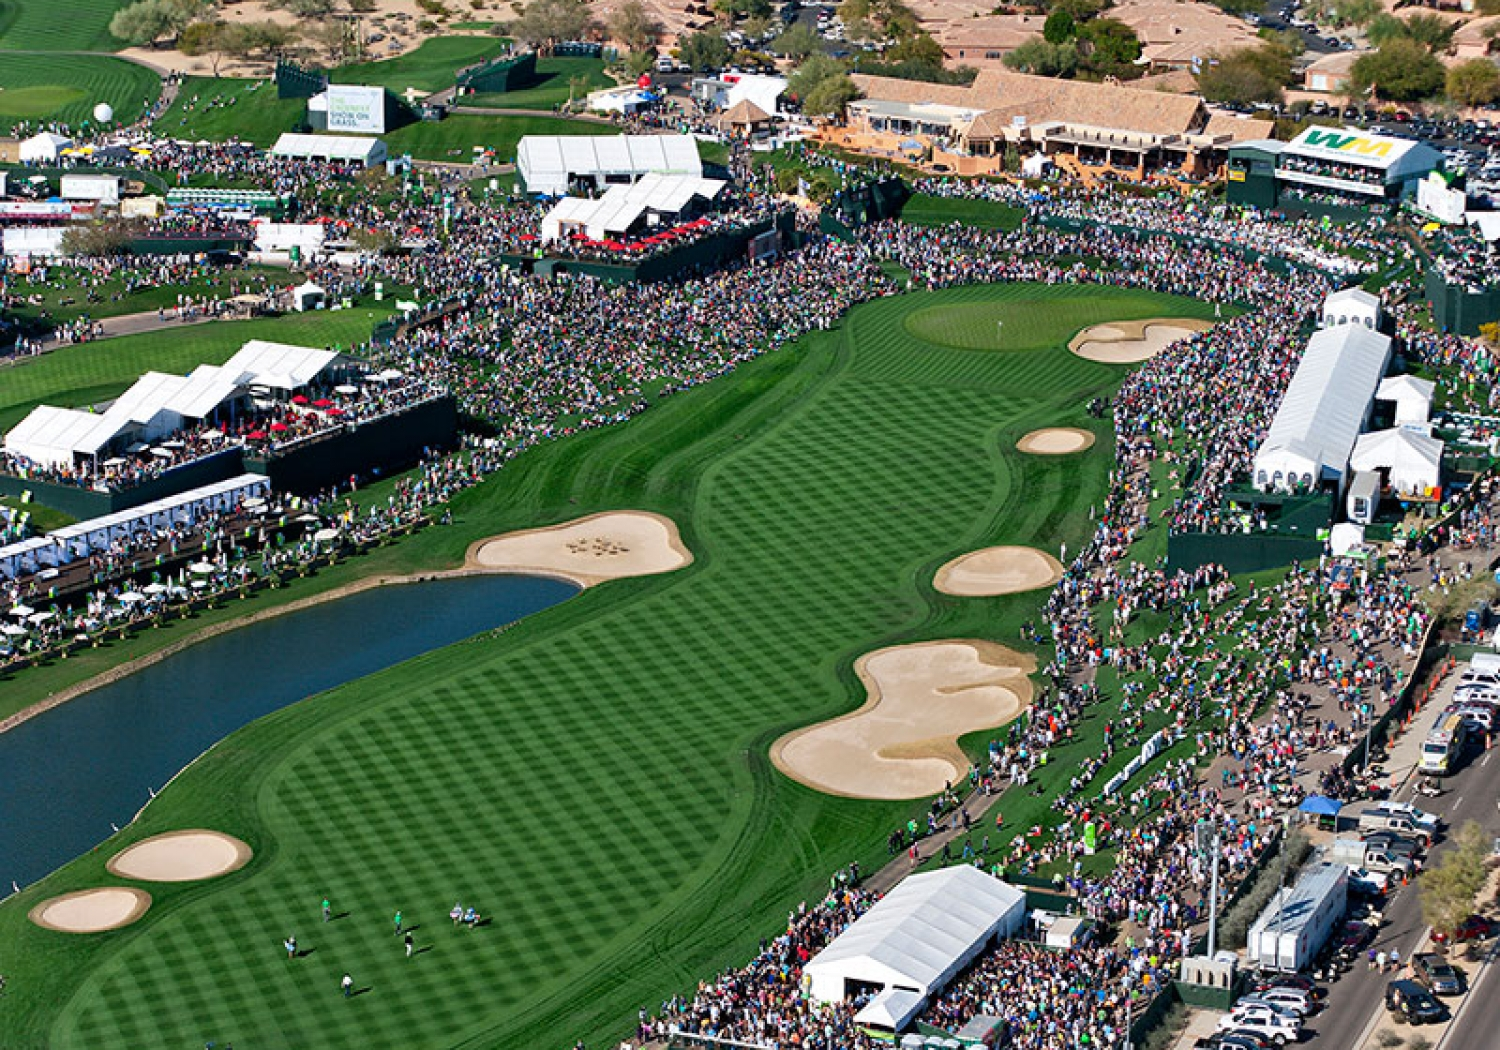 It All Comes Down To The 18th Hole